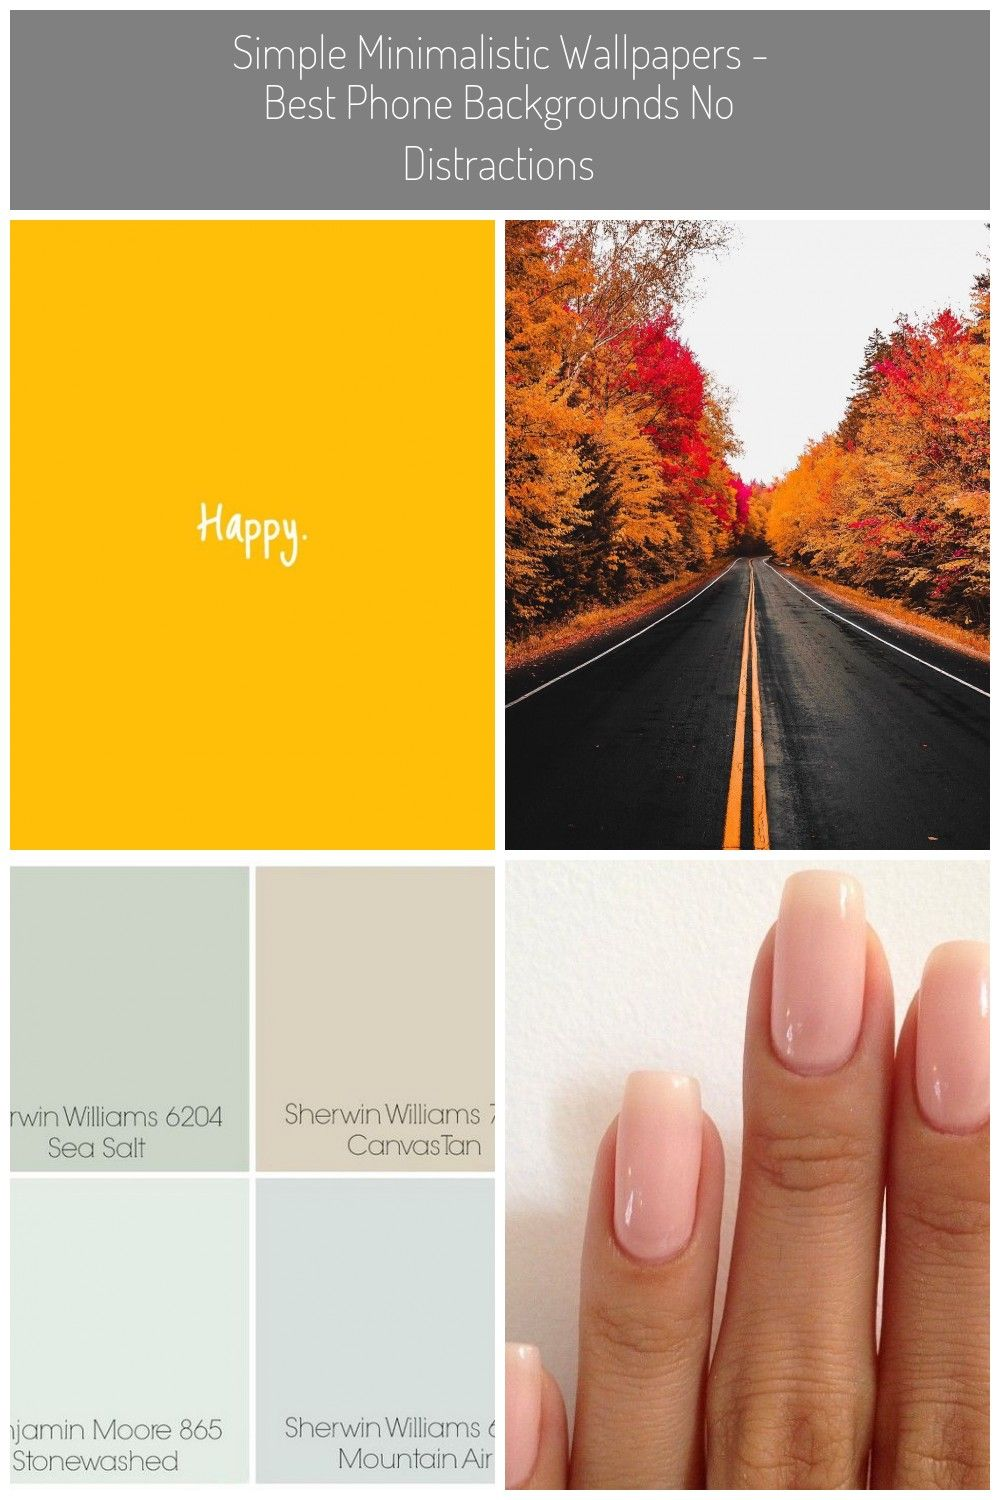 Simple Minimalistic Wallpapers Best Phone Backgrounds to